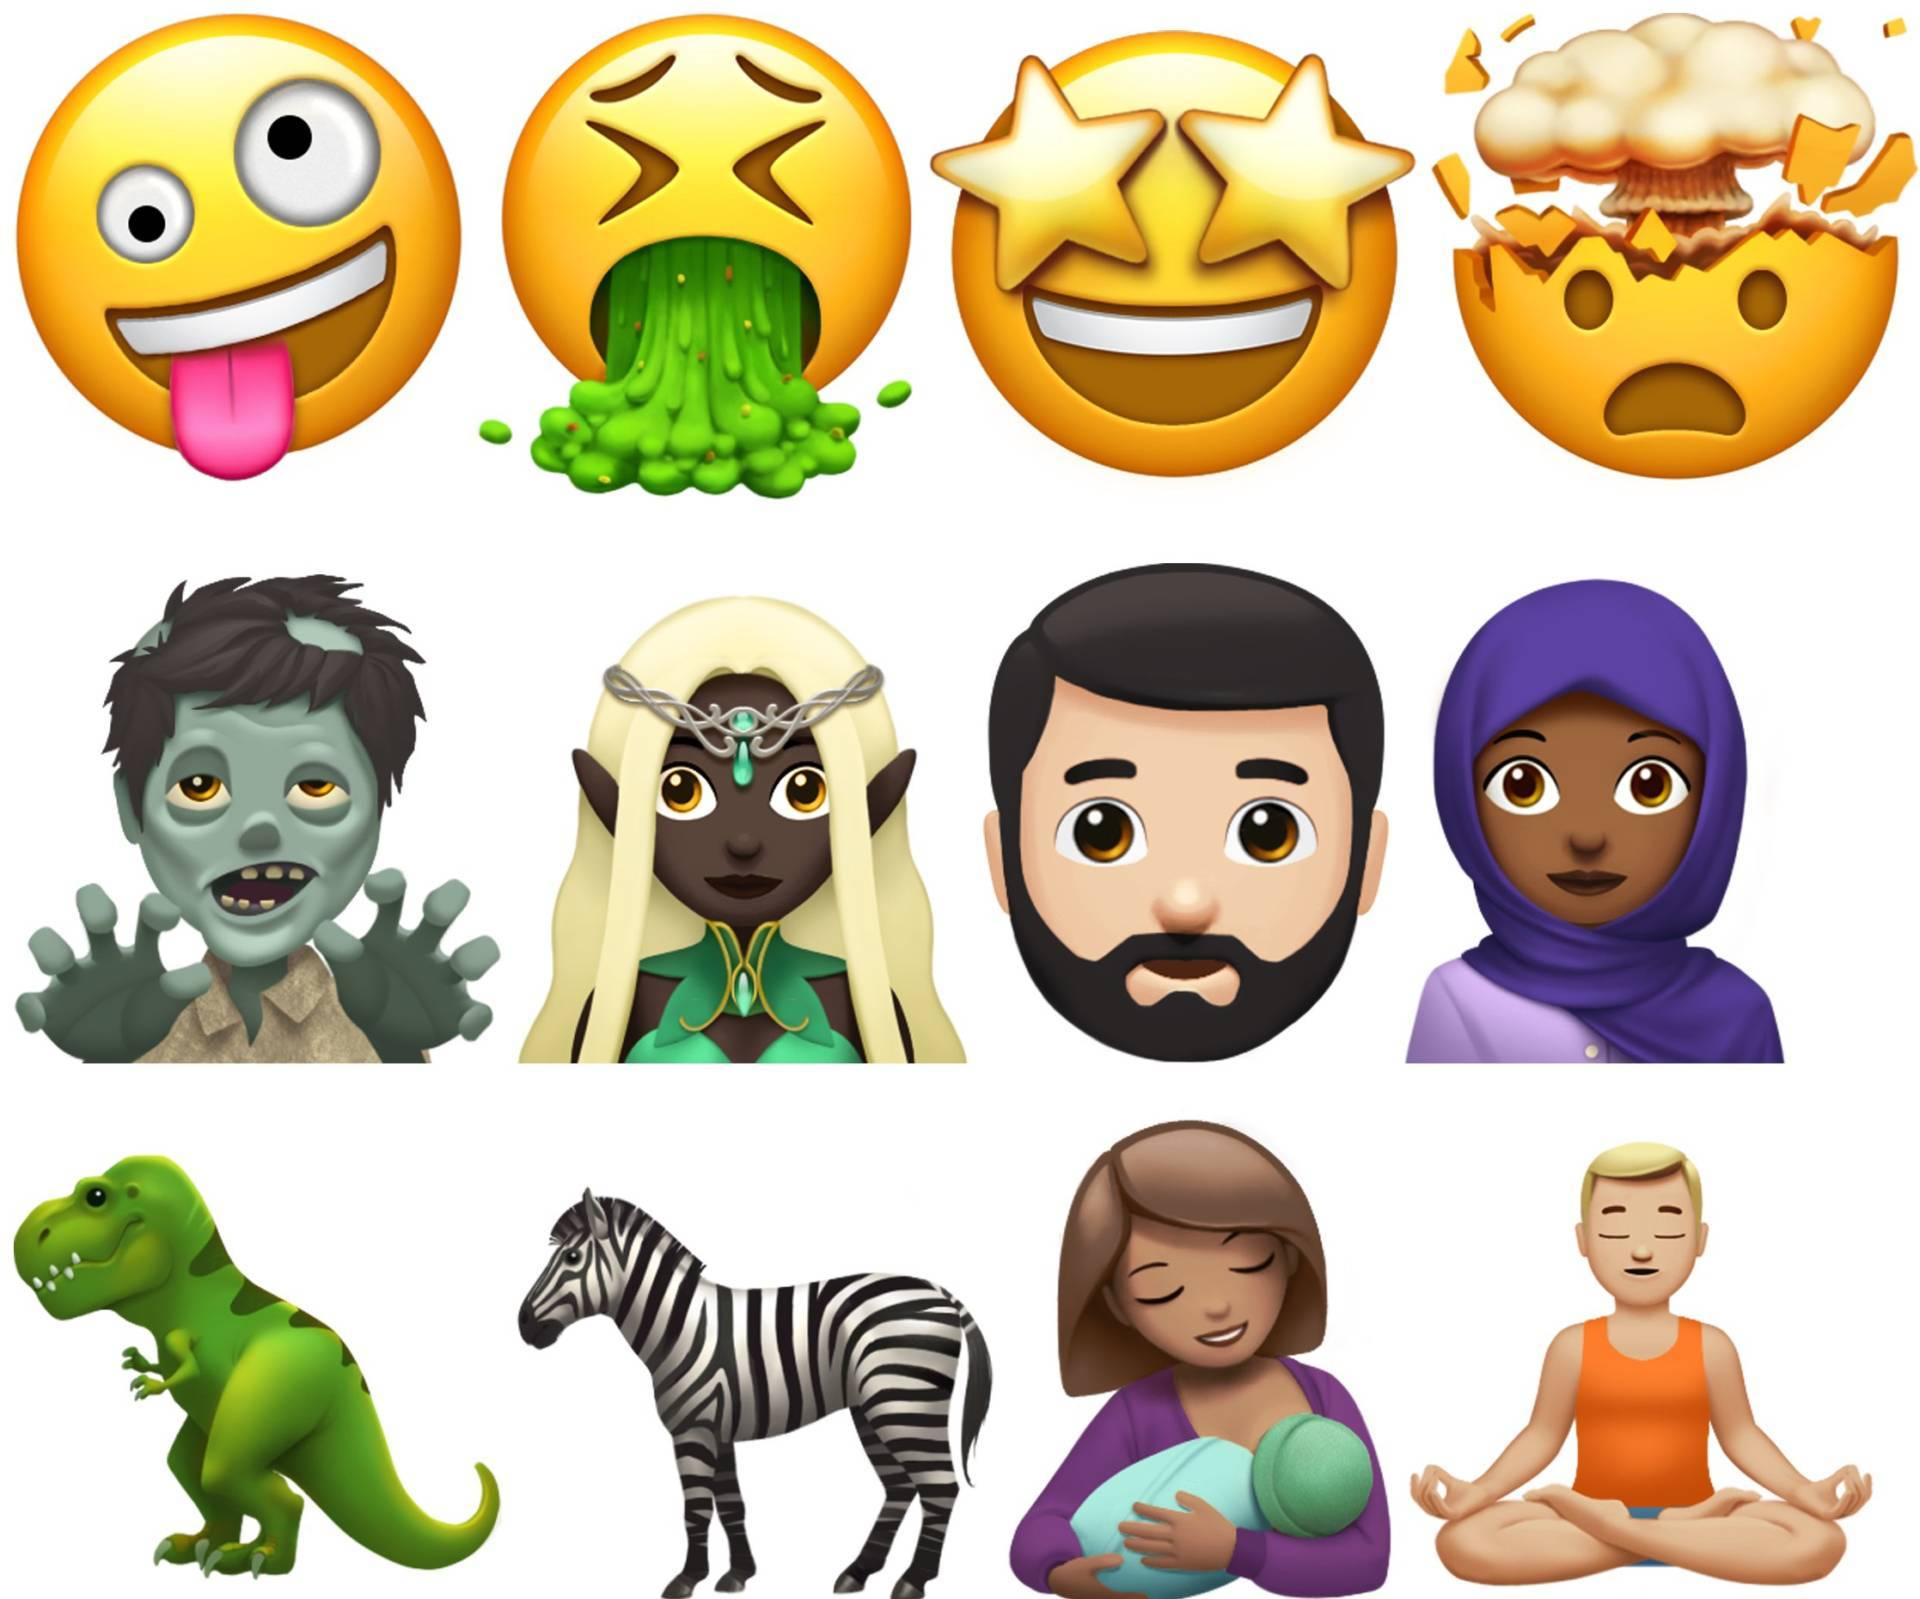 how to get new emojis on iphone ecco le nuove emoji che arriveranno con ios 11 20102